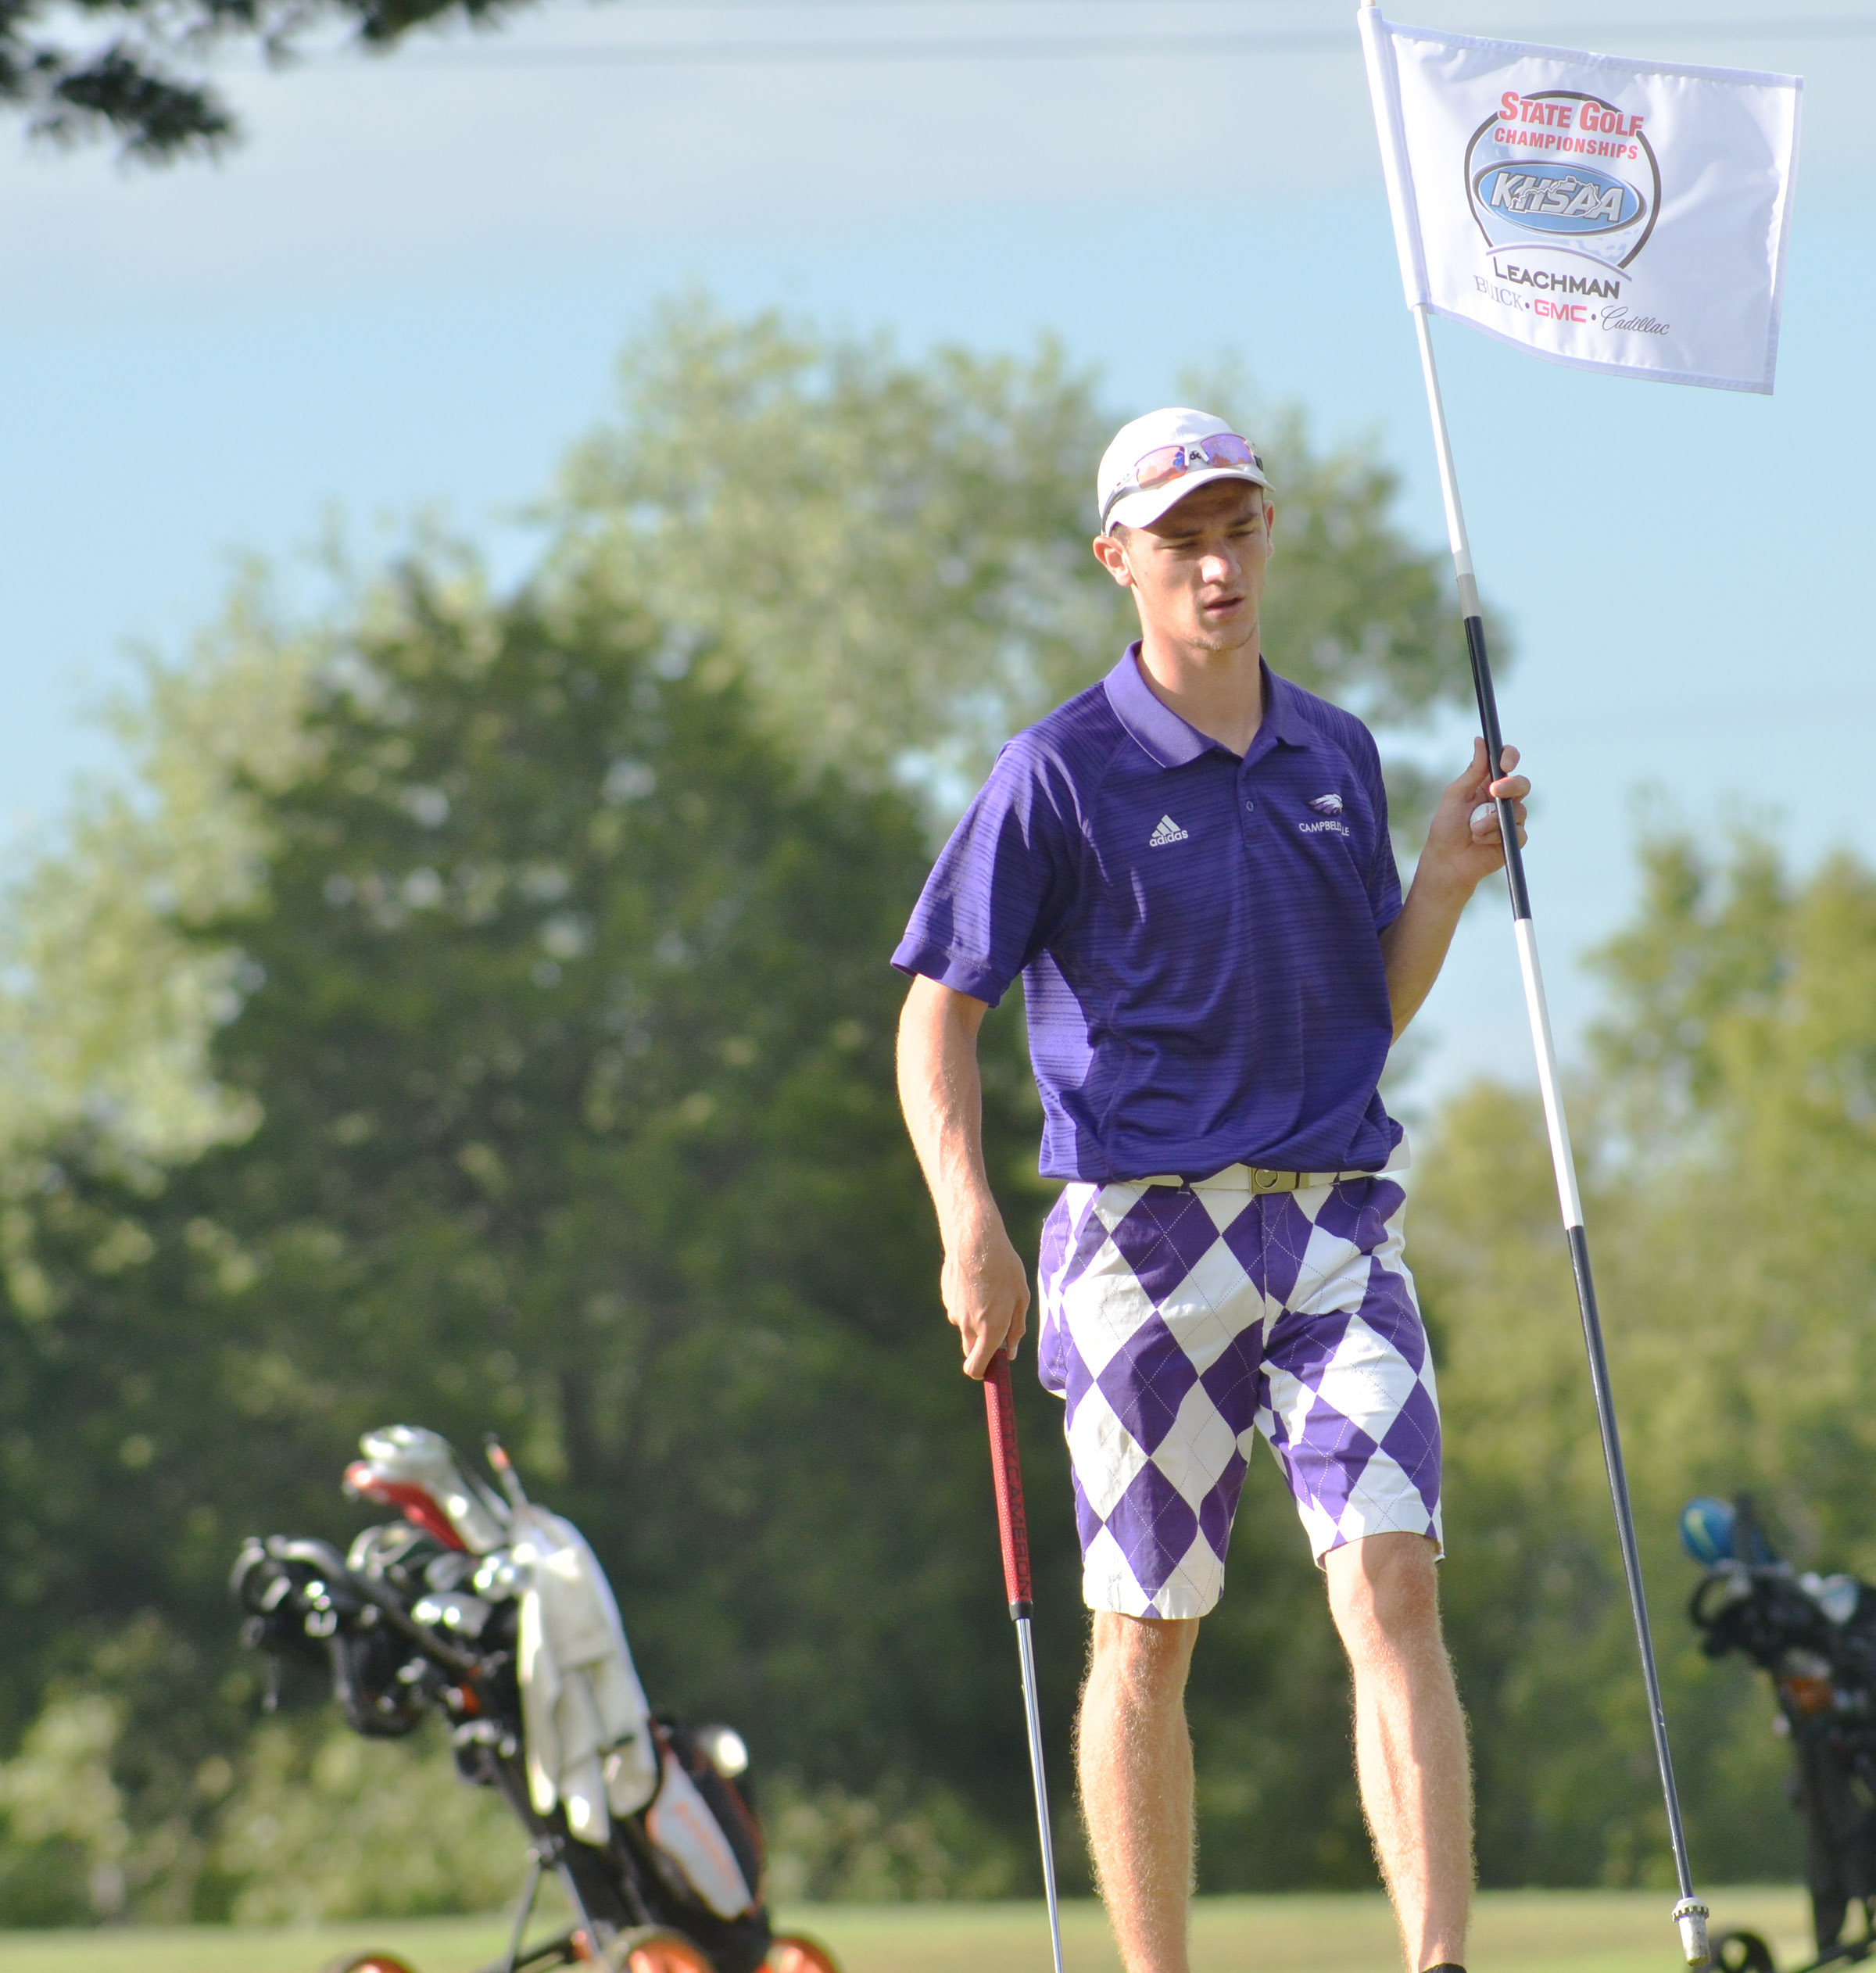 CHS senior Connor Wilson gets ready to walk to the next hole.